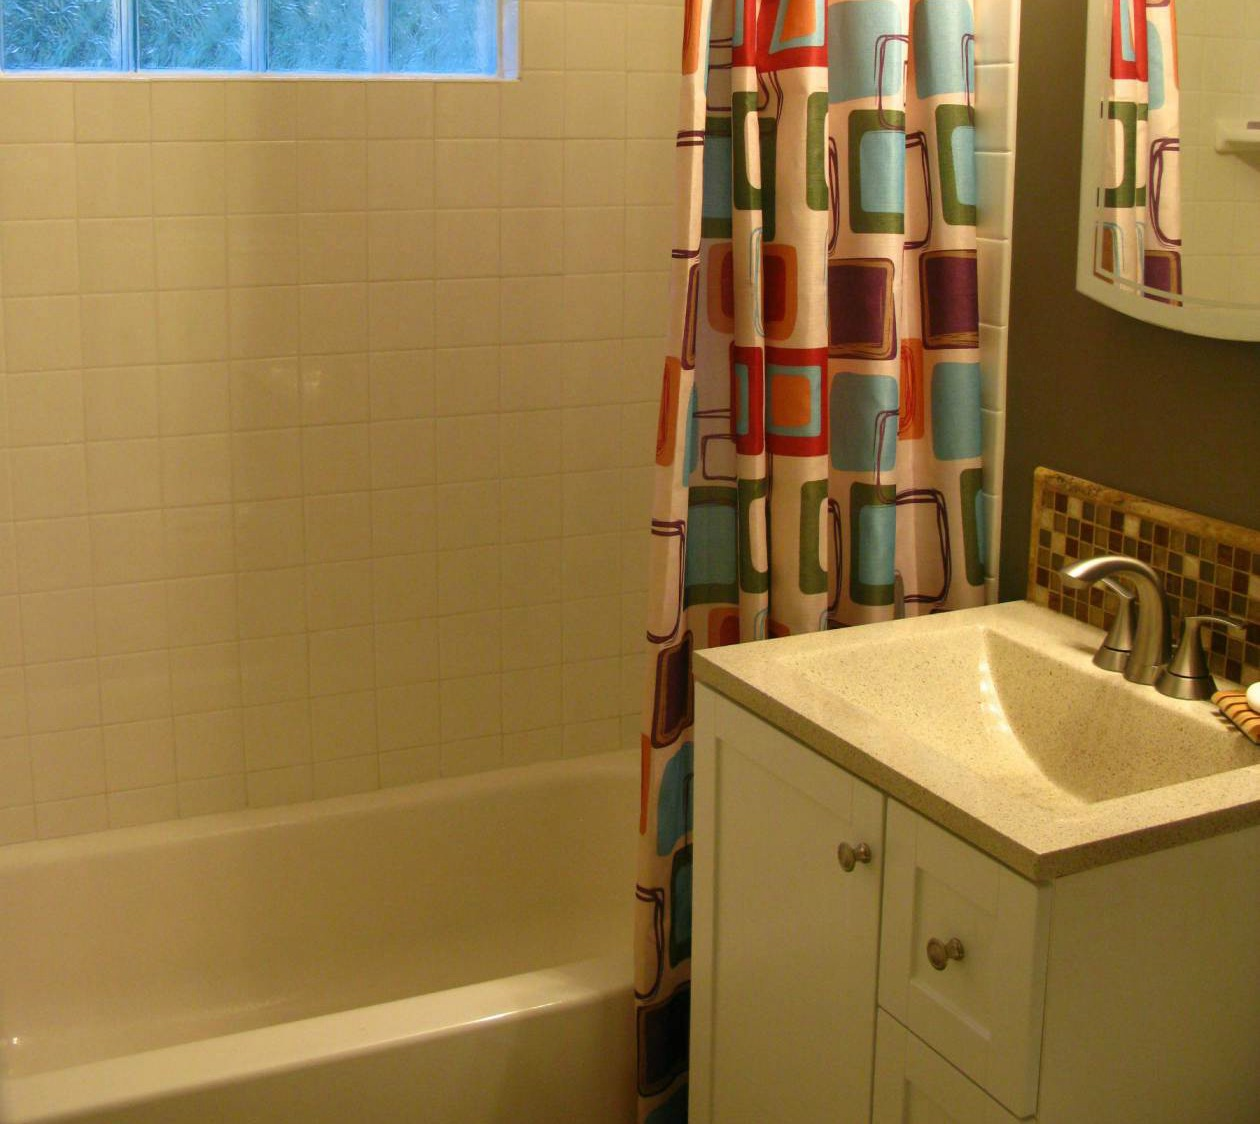 How To Start A Bathroom Remodel Glamorous Bathroom Remodel From Start To Finish Review